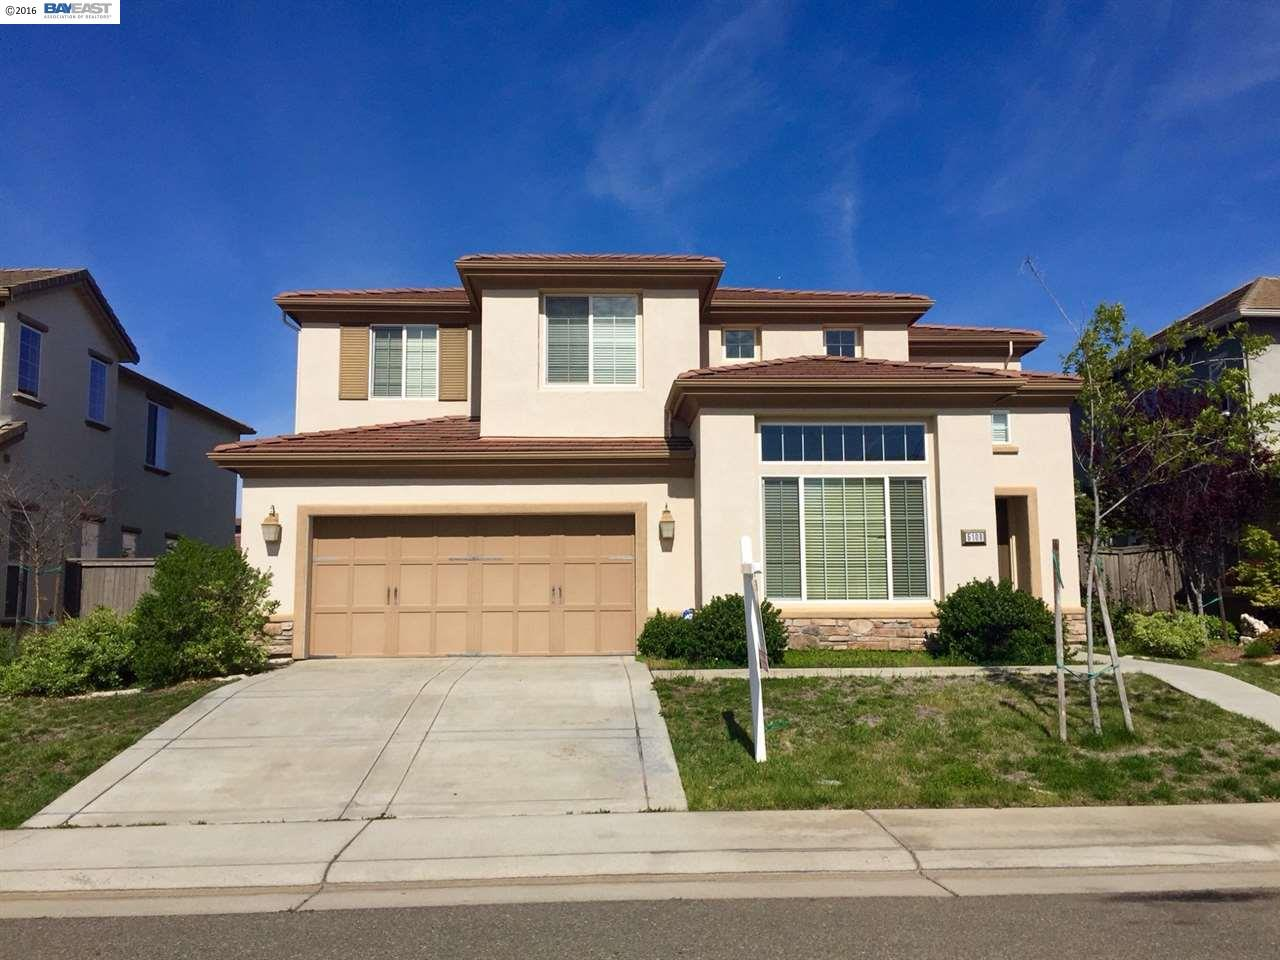 5109 Otter Pond Way, Rancho Cordova, CA